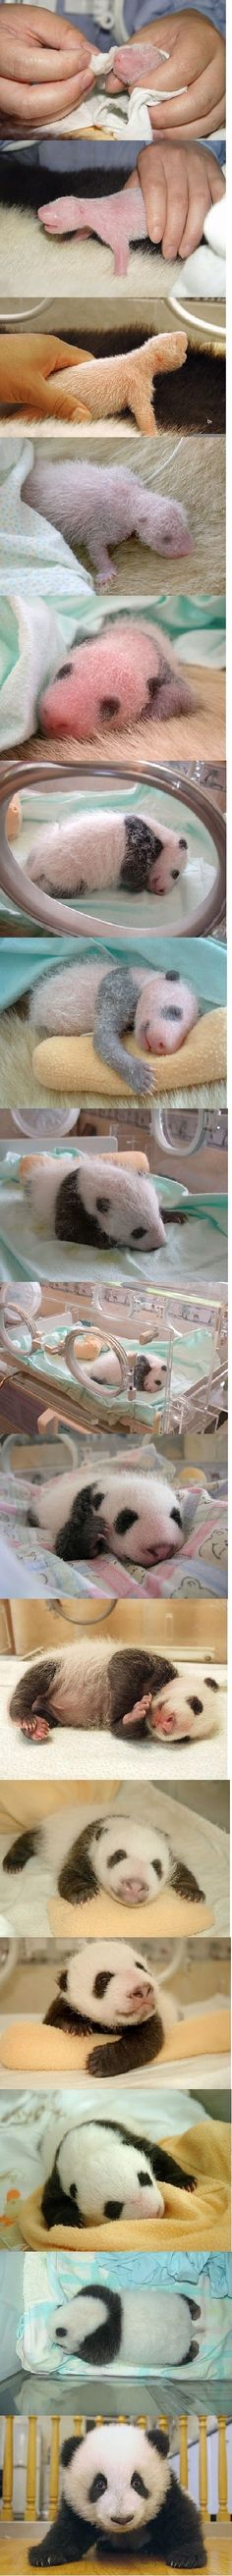 This is way cute, I love pandas.